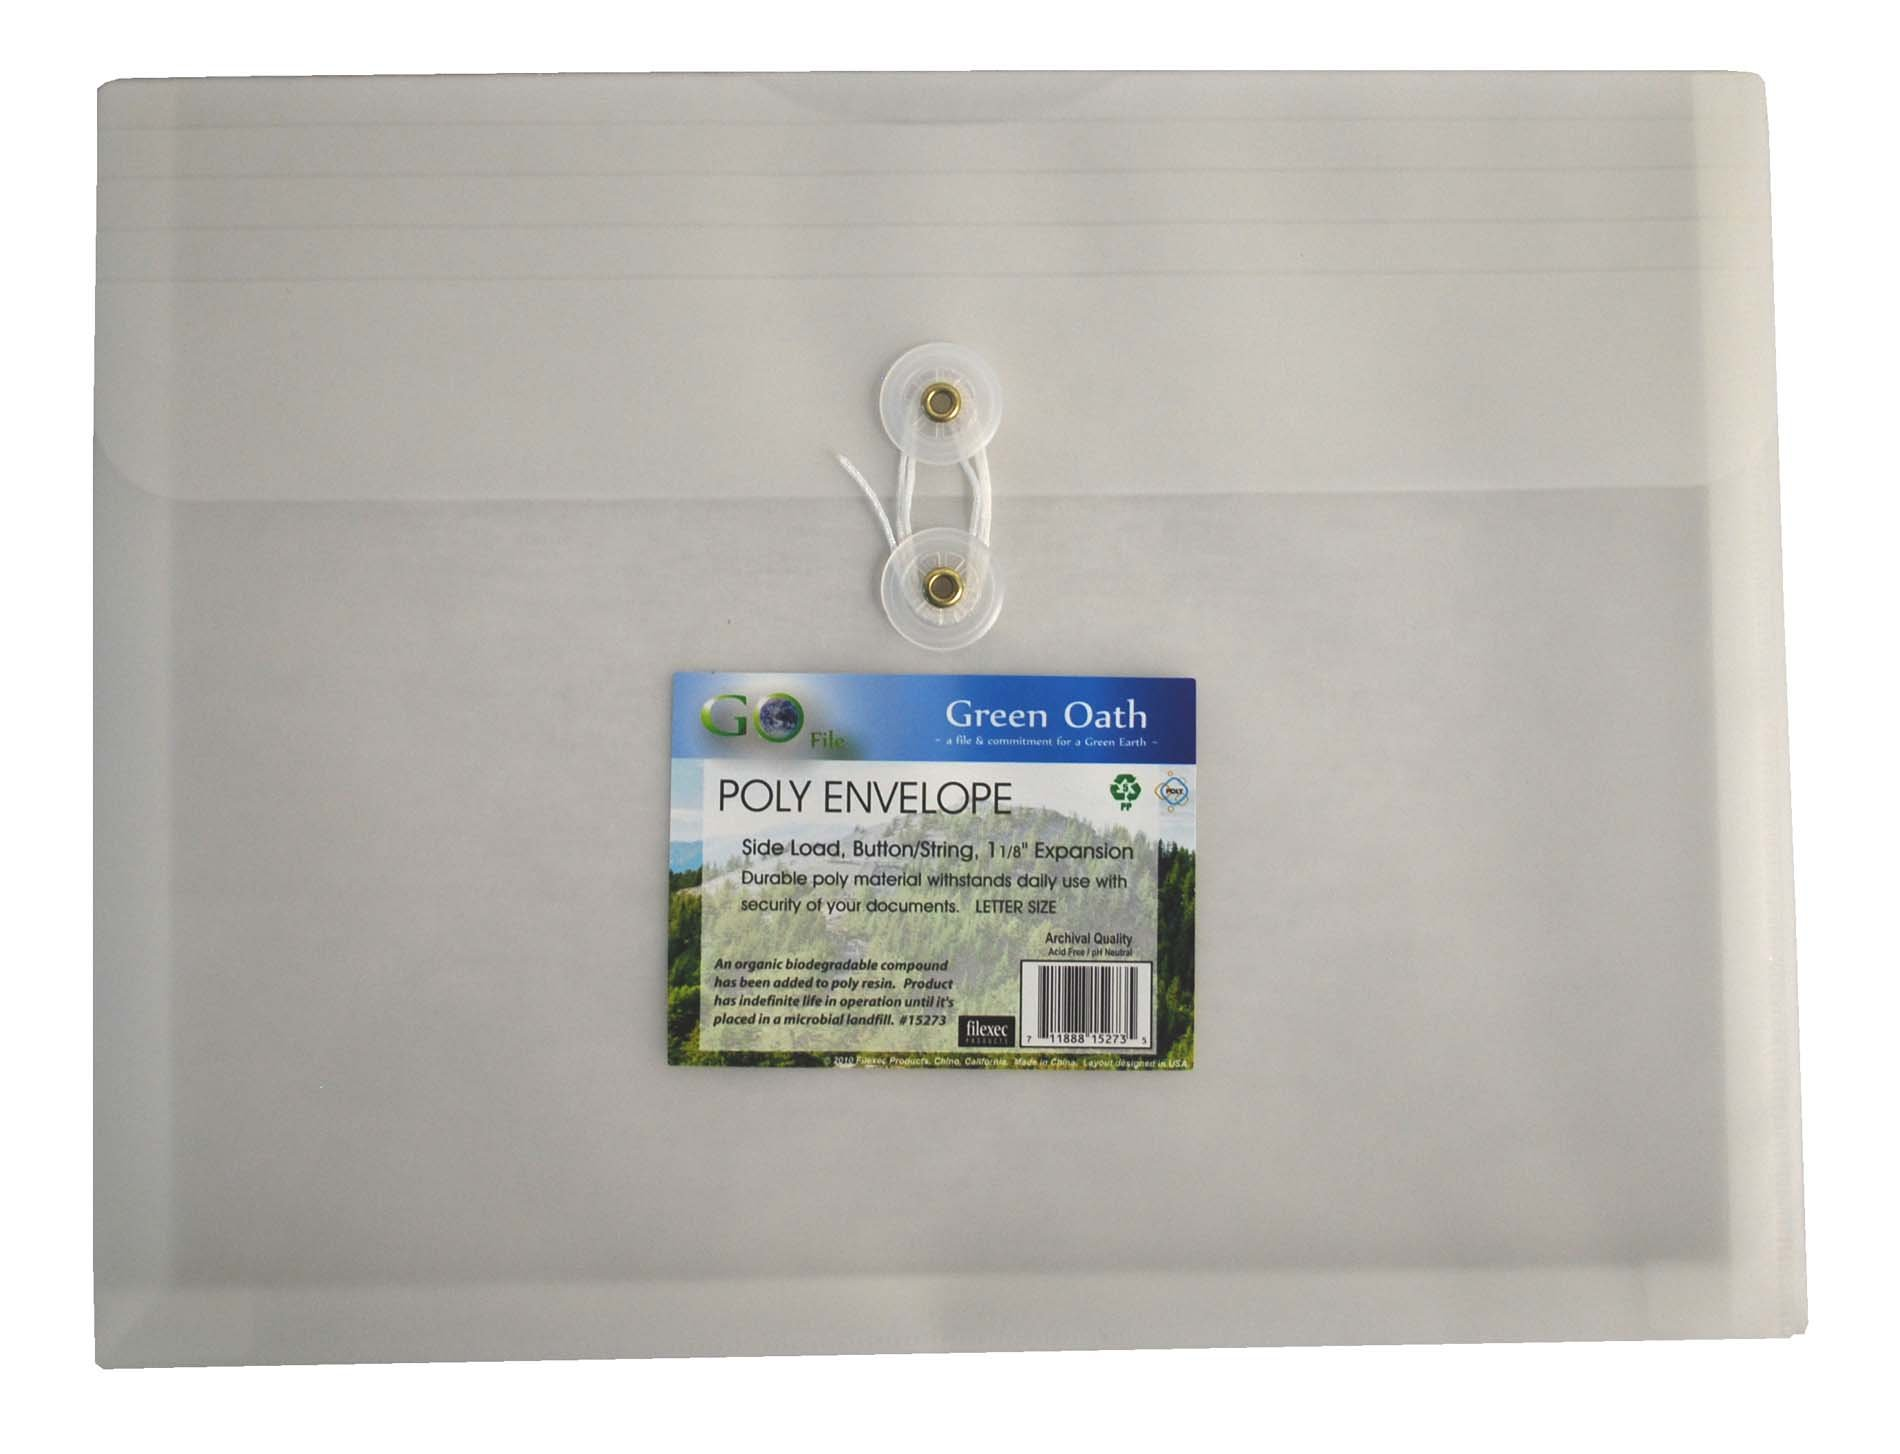 Green Oath Poly Envelope, Side-Load, Letter Size, Button String Closure, Pack of 12, Snow (50246-15273)